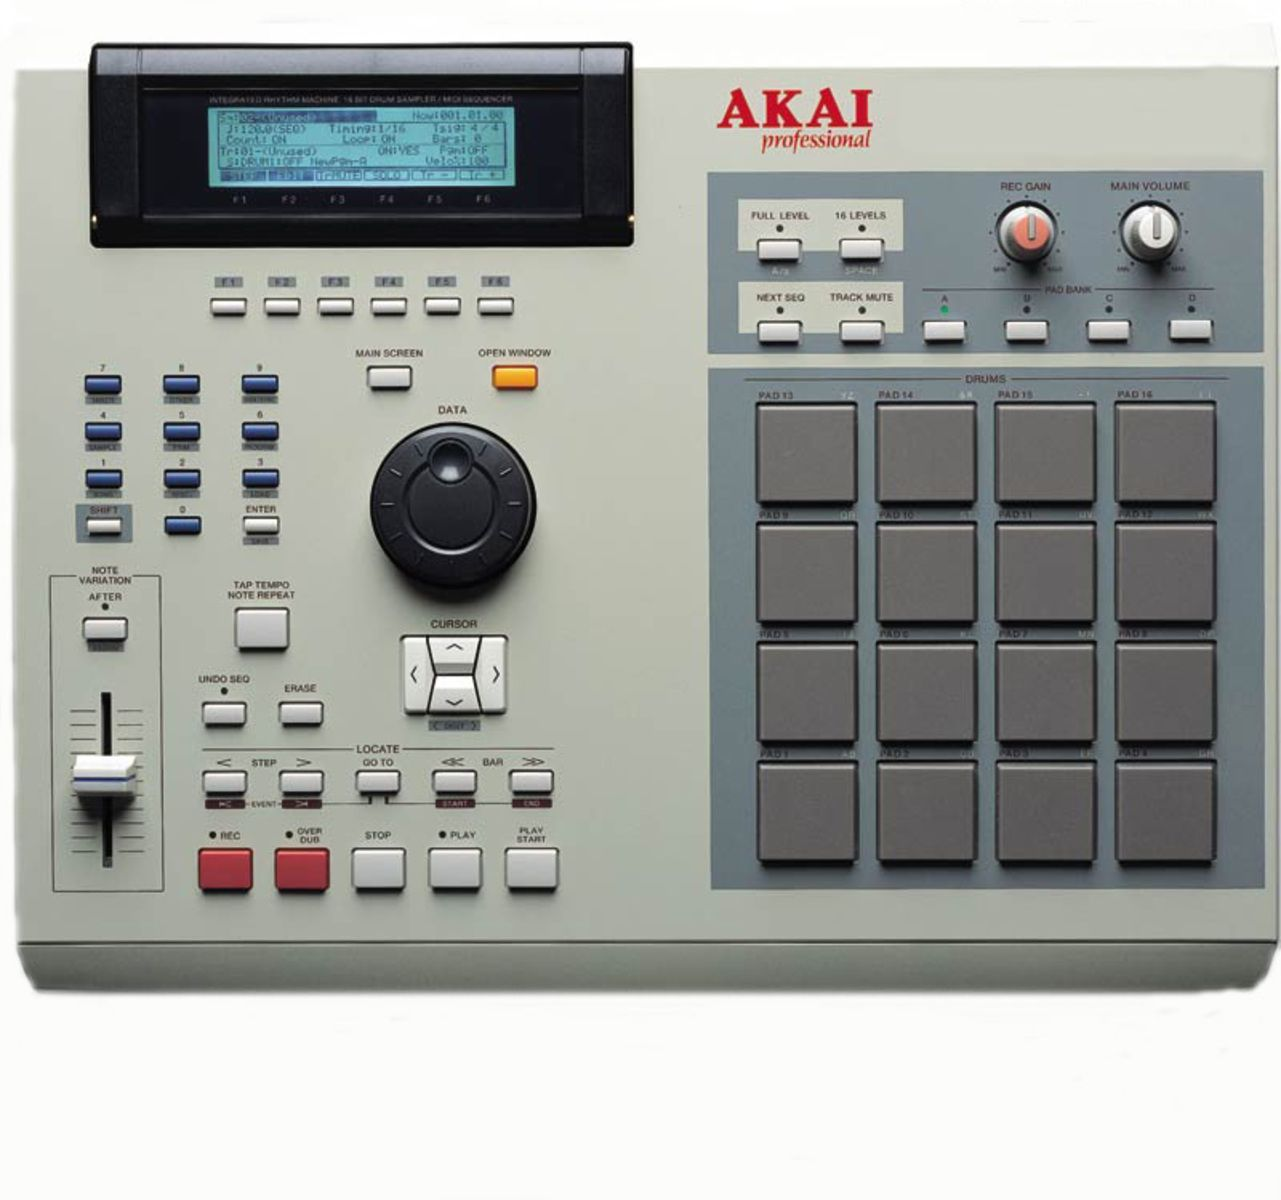 a summary of advance features of the akai mpc2000 When you finally read the manual and discover features you go ahthat makes   solid review, only thing i would add as 2xl gripe is the file.